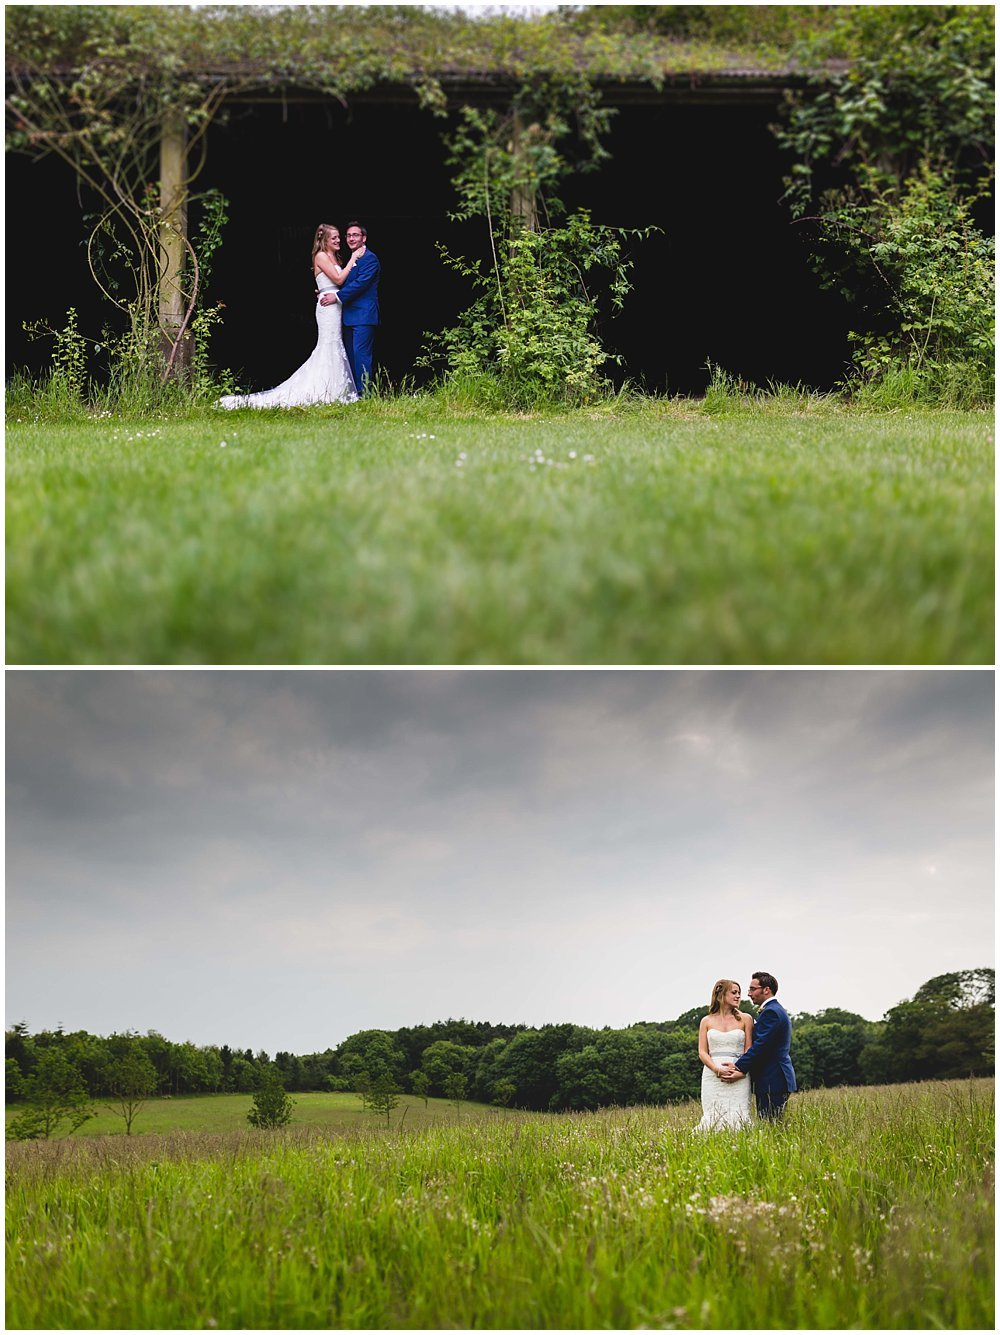 MEGHAN AND JAMES CHAUCER BARN WEDDING - NORFOLK AND NORWICH WEDDING PHOTOGRAPHER 38